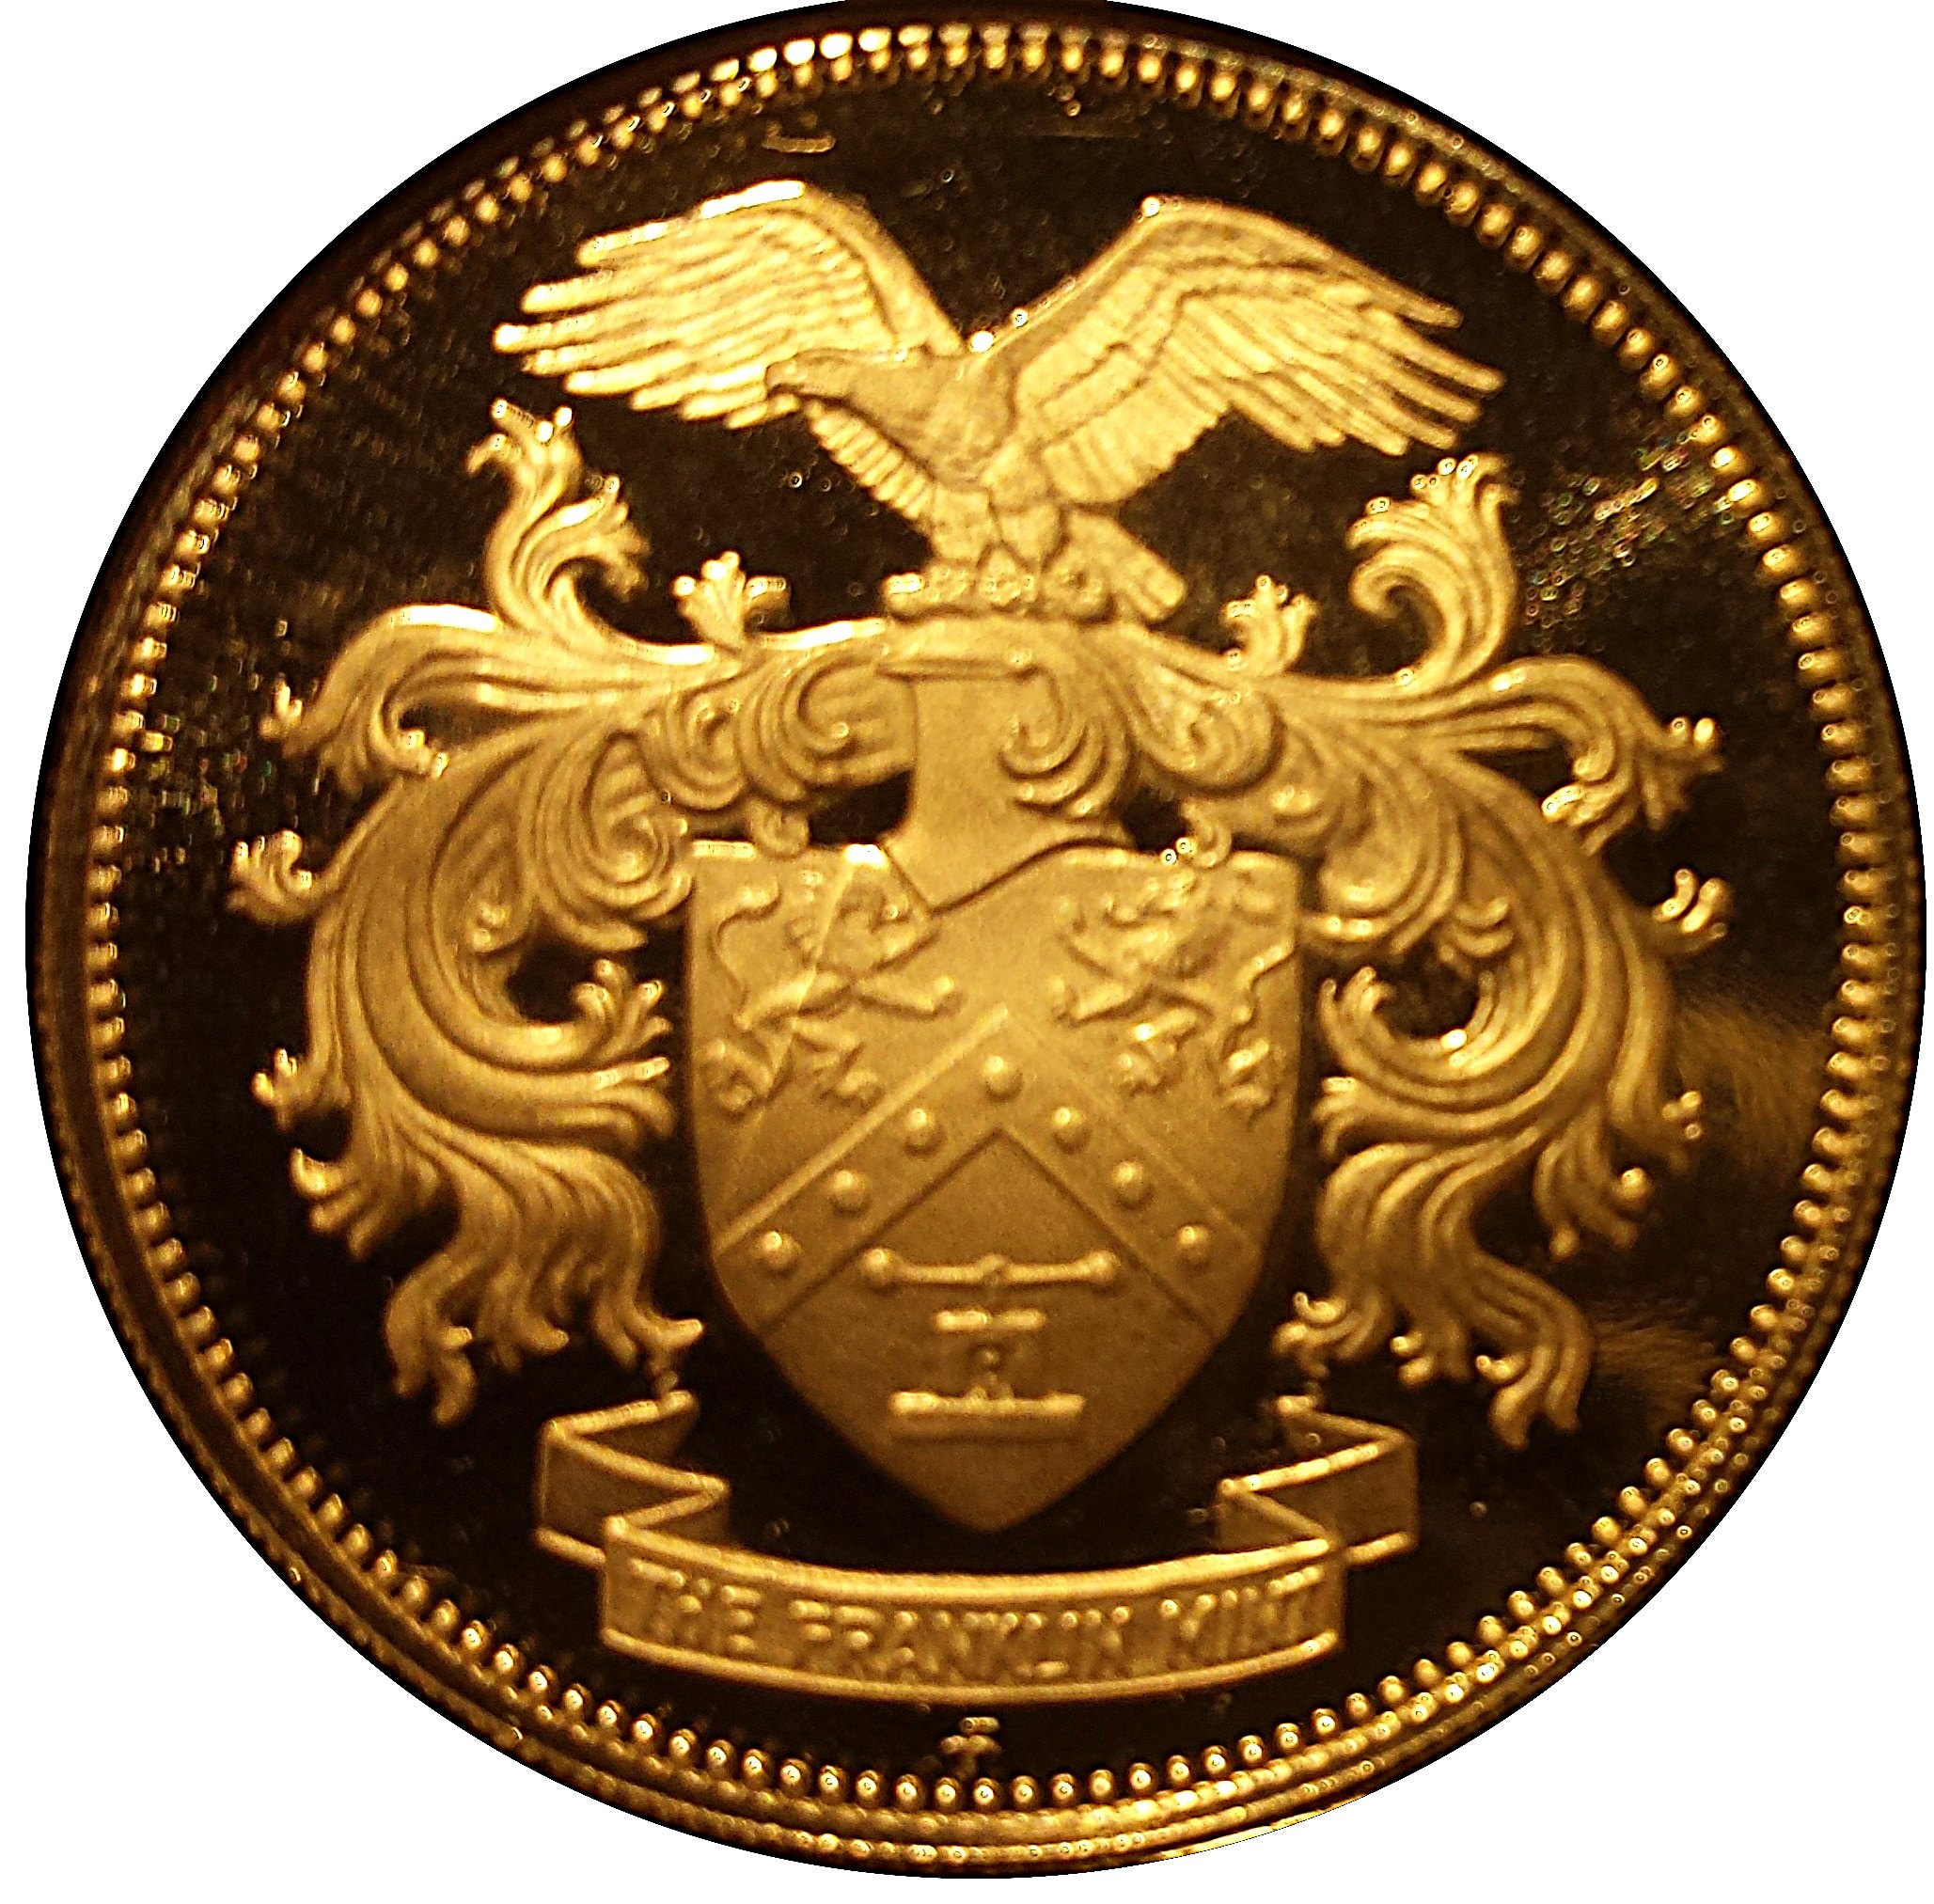 coins are minted at